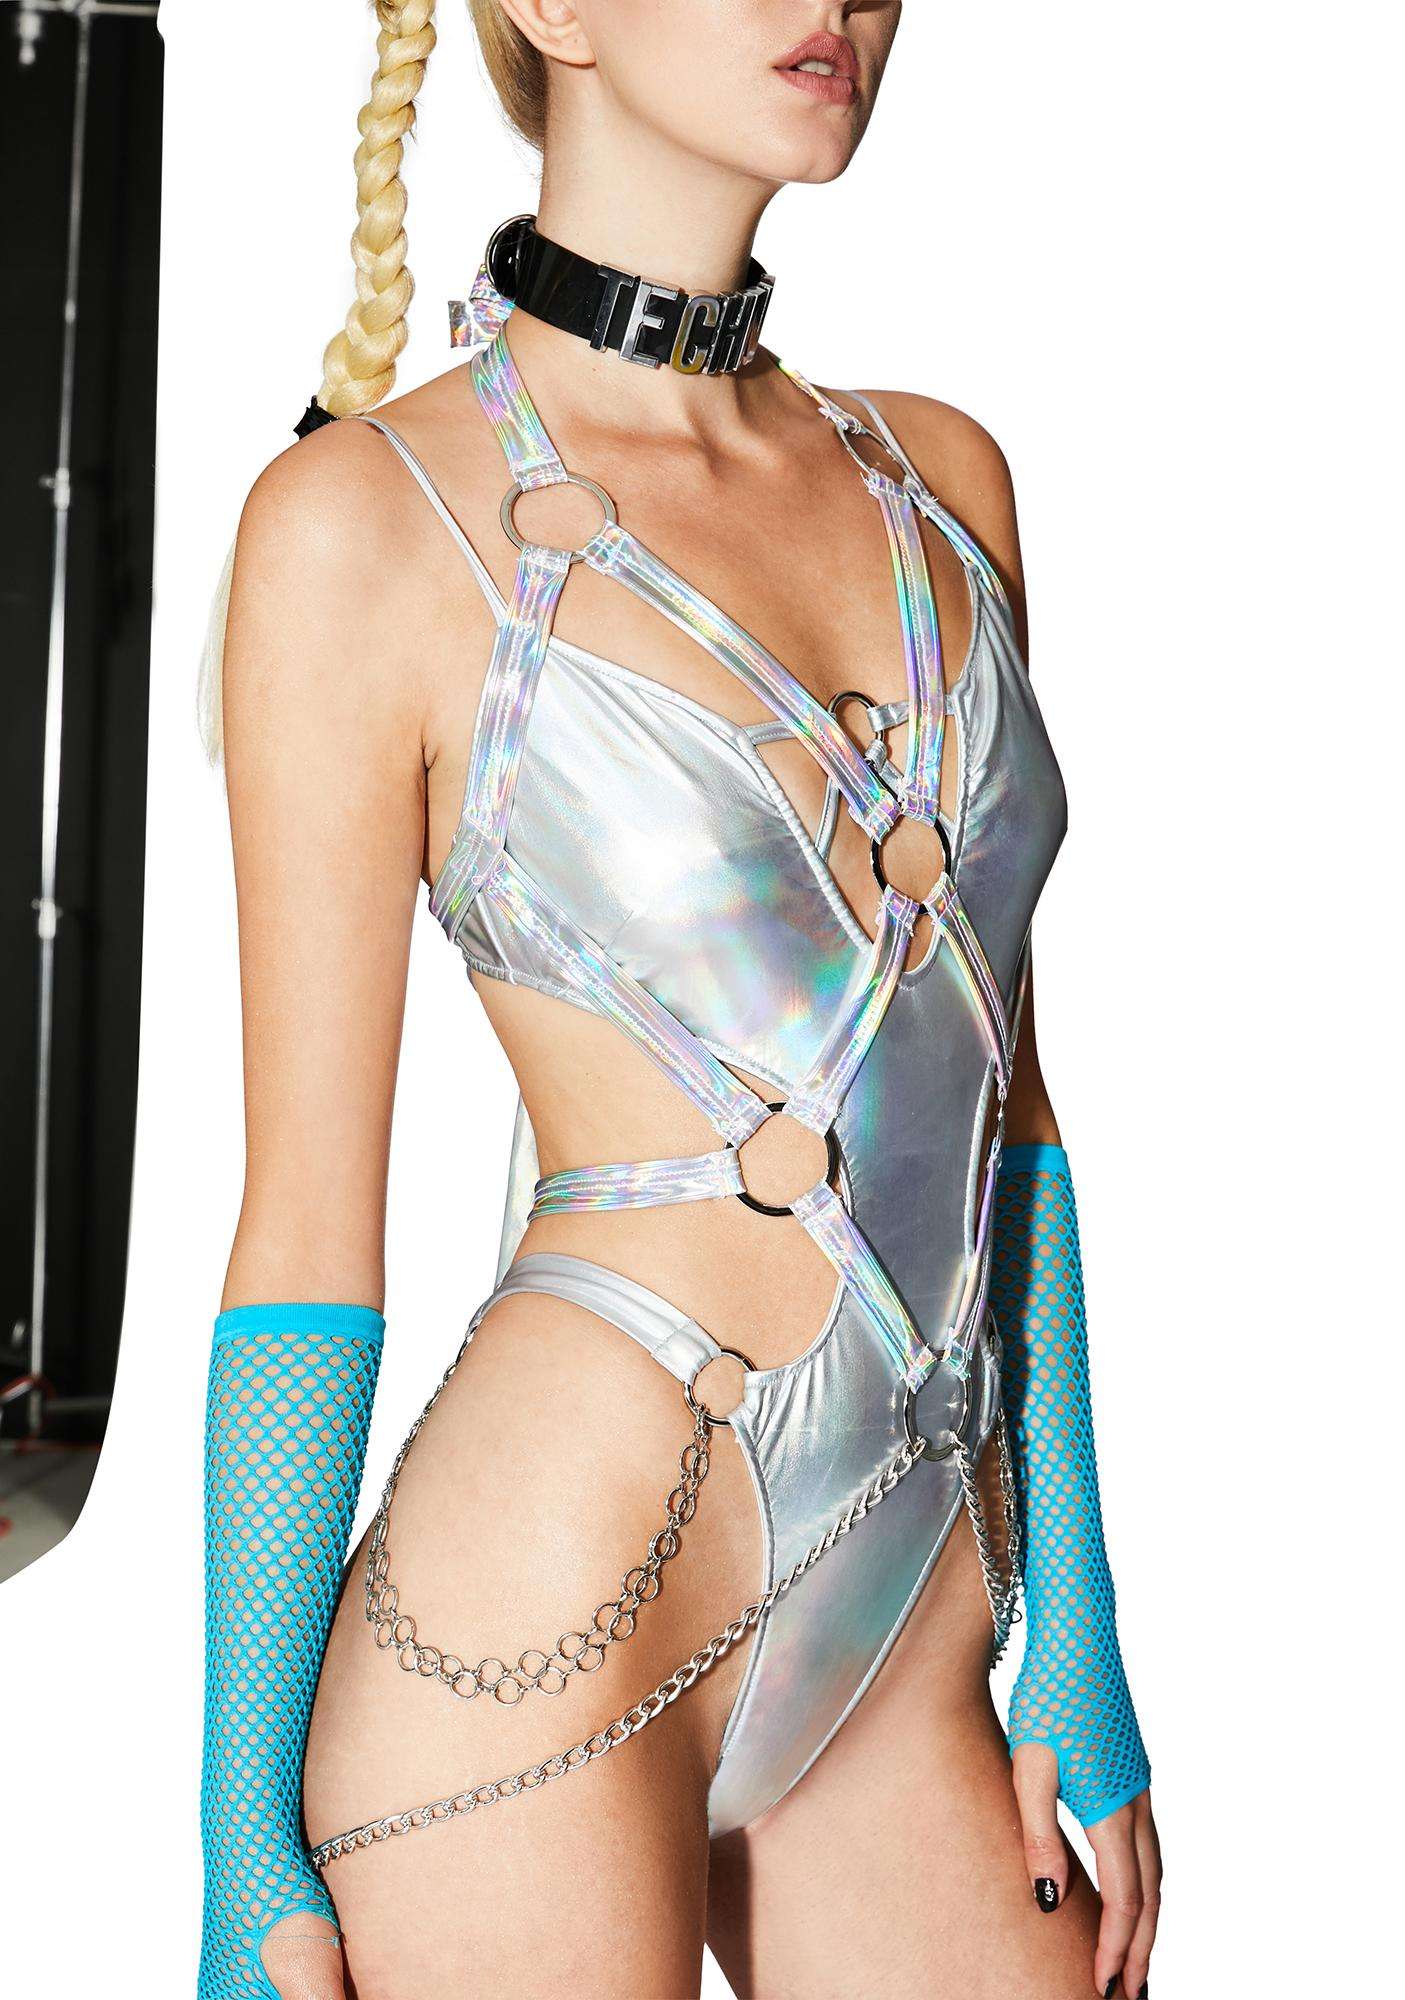 Roma Electric Chaos Iridescent Harness